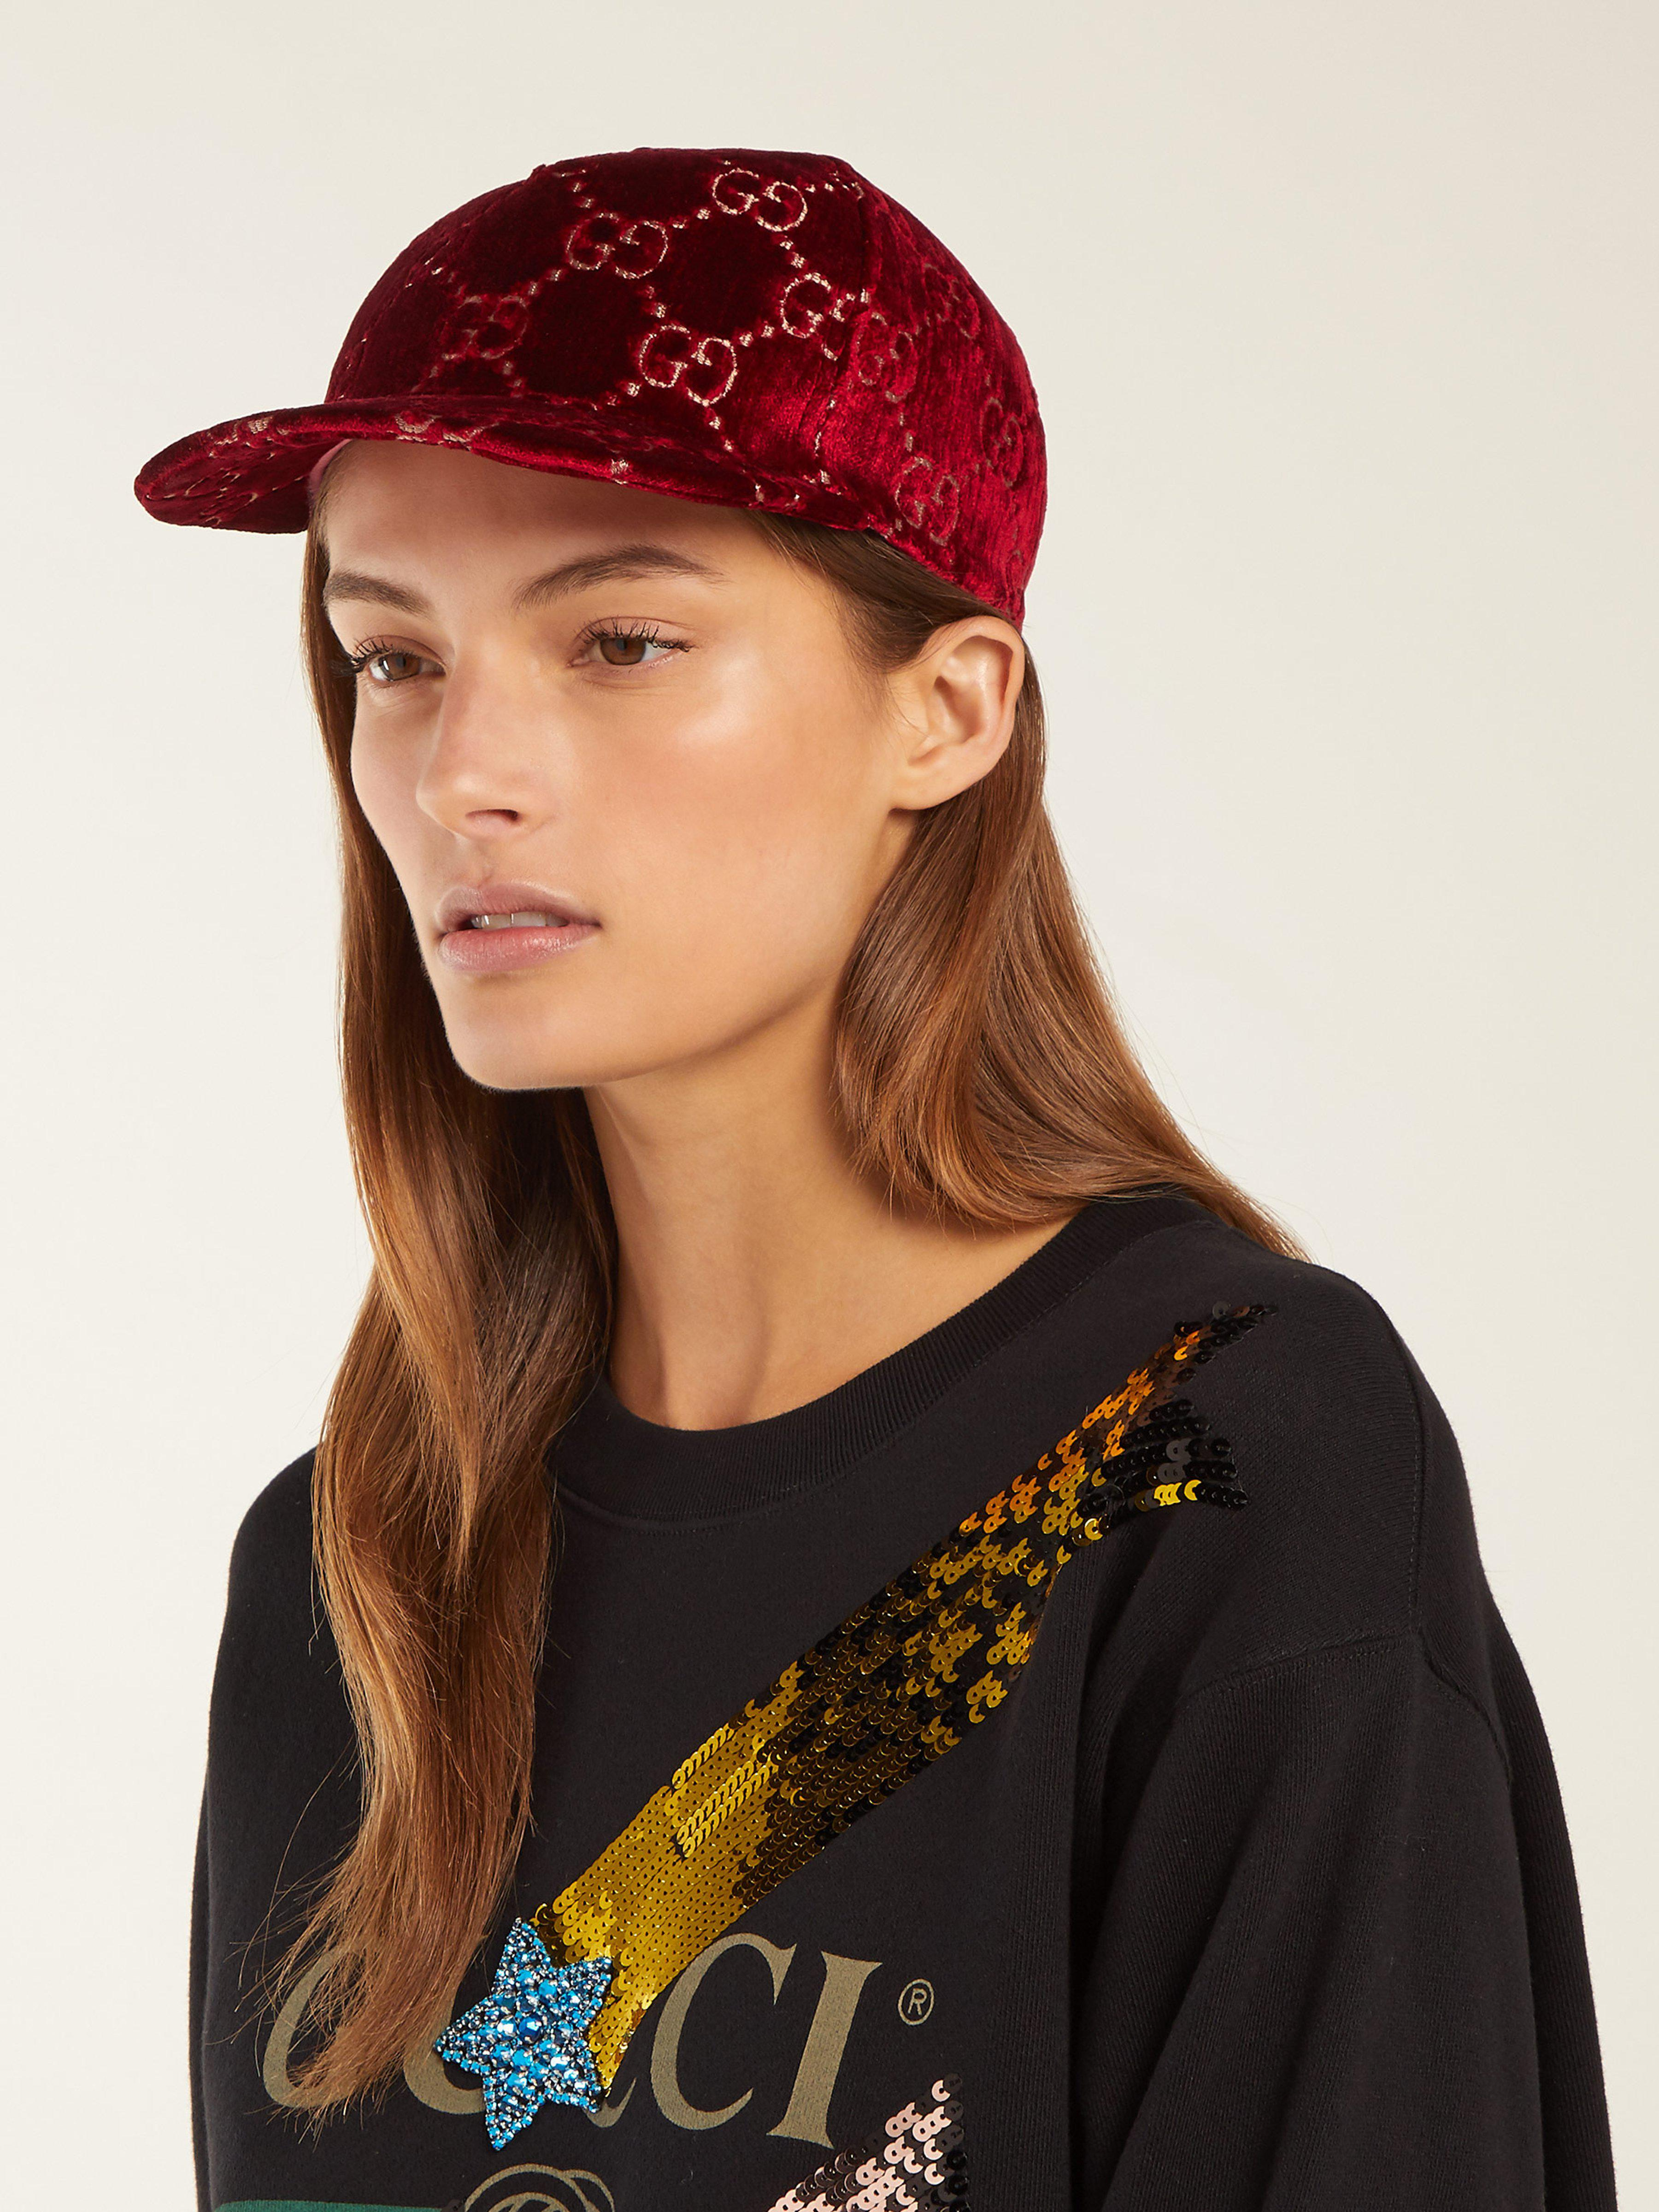 Gucci Gg Embroidered Velvet Cap in Red - Save 21% - Lyst deacf857a37